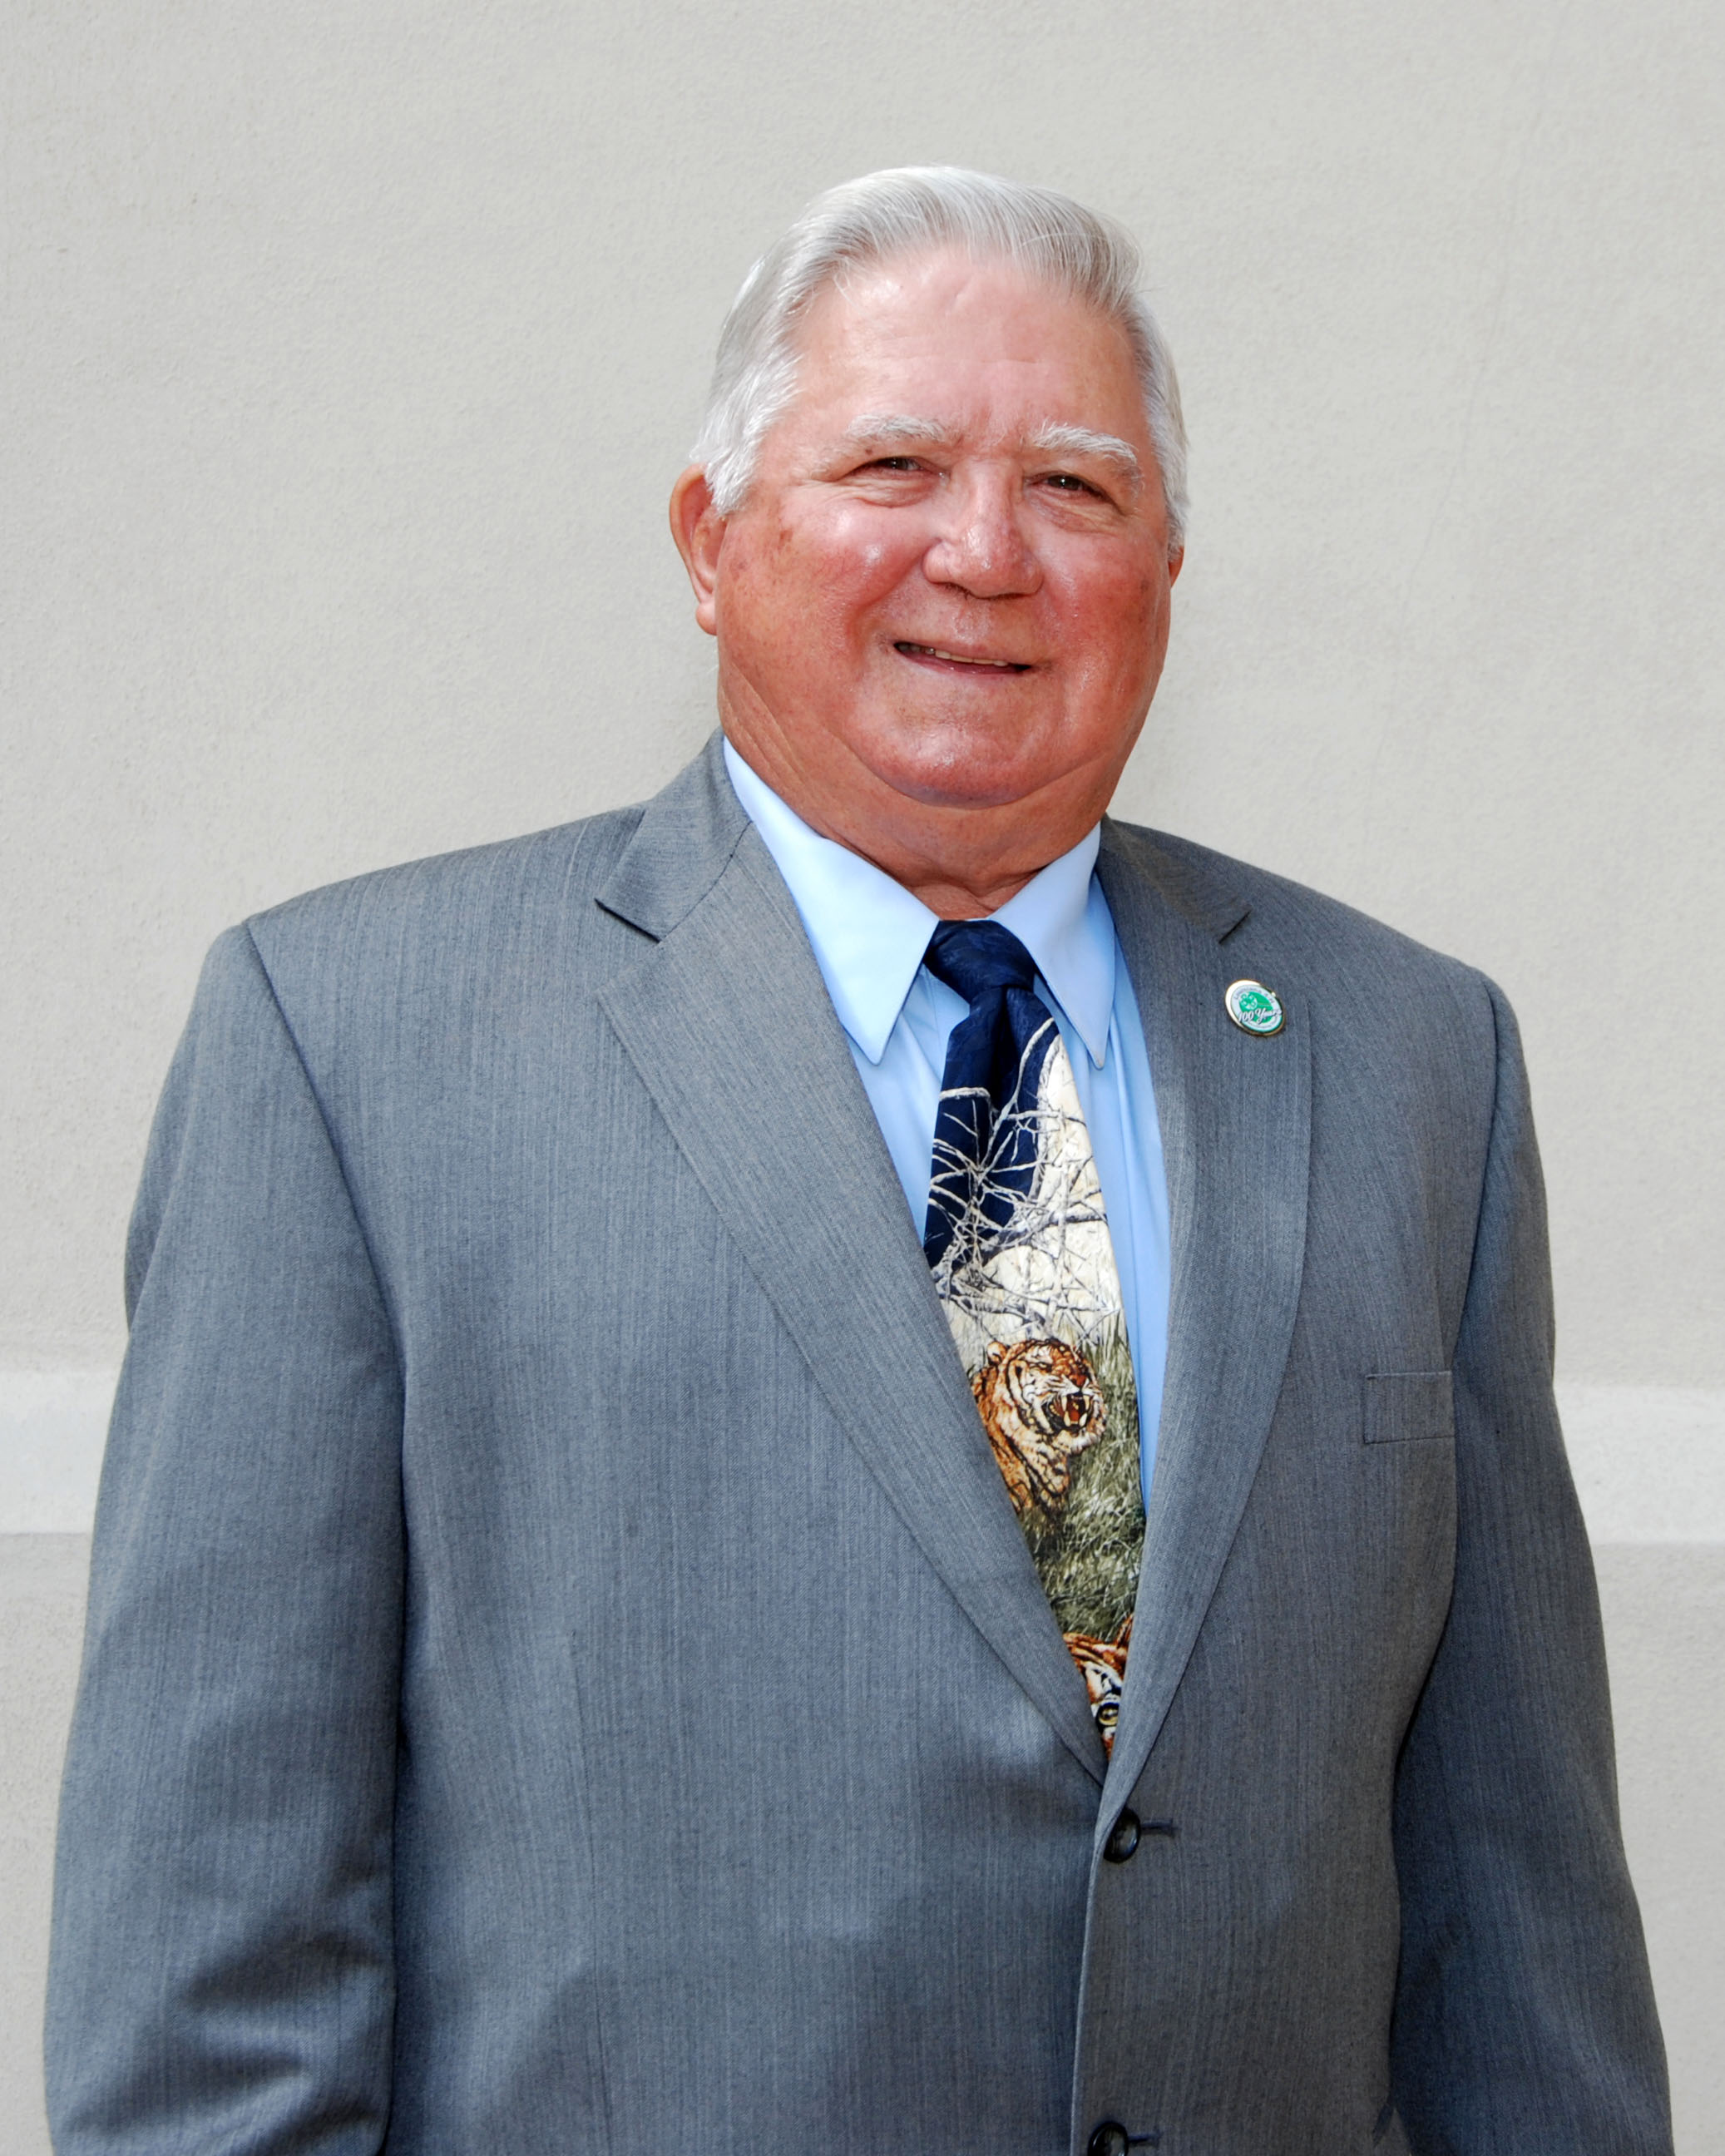 New St James Parish 4 H scholarship honors Kermit Coulon